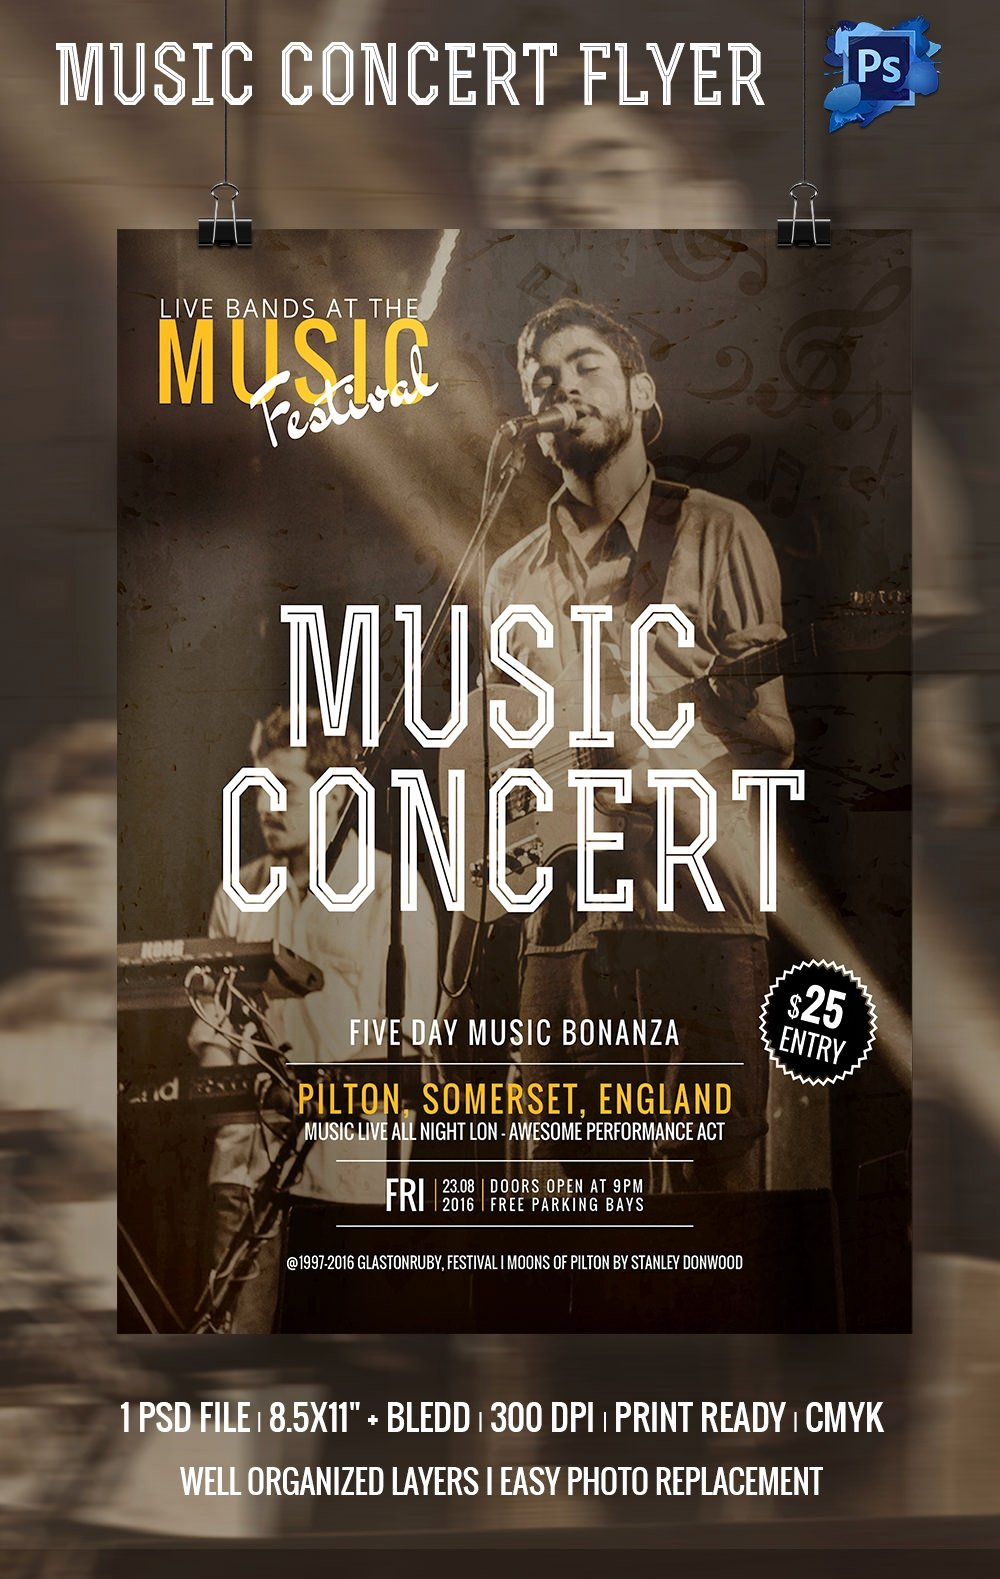 Concert Flyer Template Psd Beautiful Concert Flyer Template 35 Psd format Download